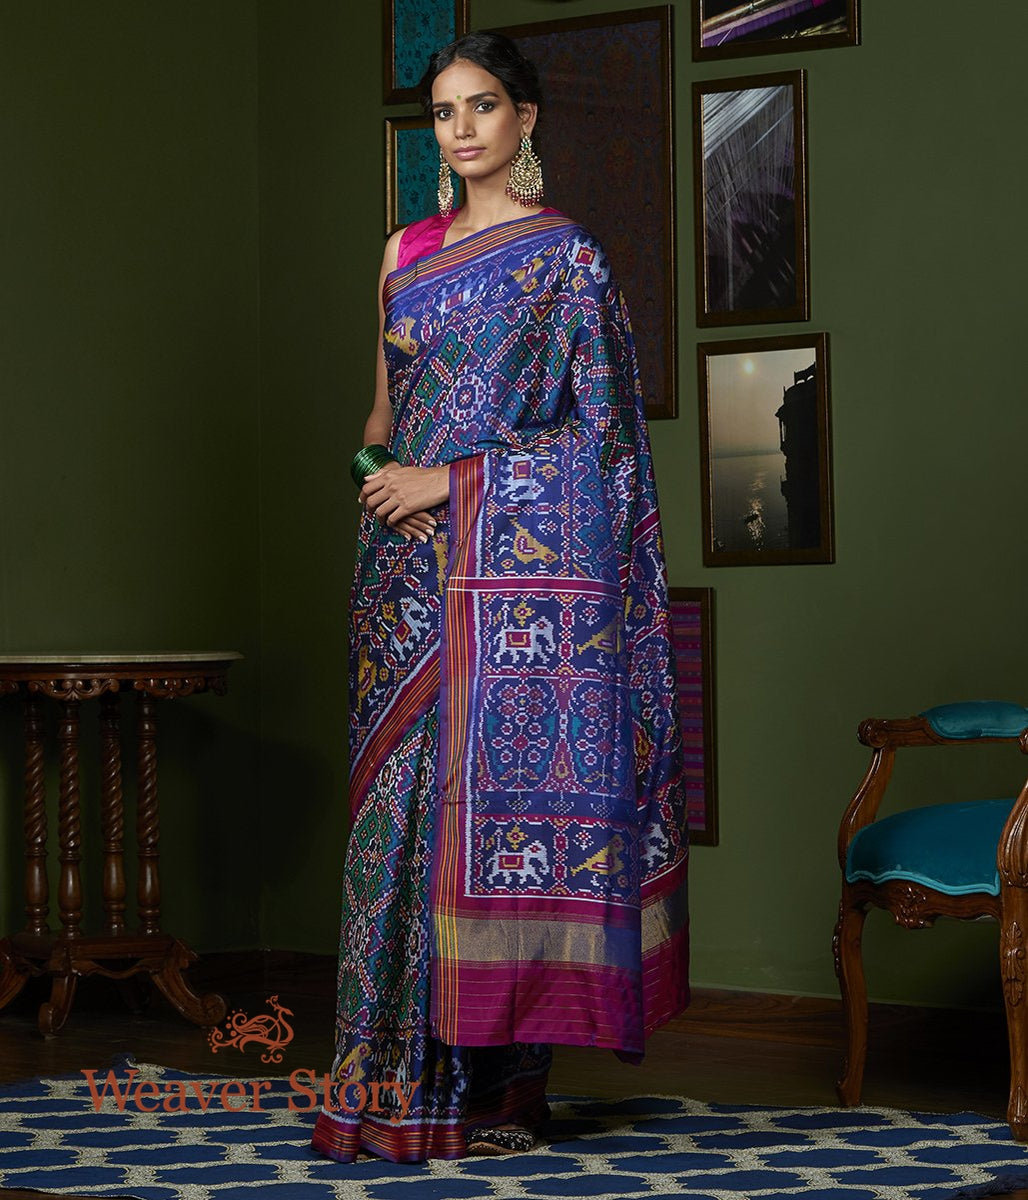 Handwoven Blue and Teal Dual Tone Gujarat Patola Saree with Purple Border